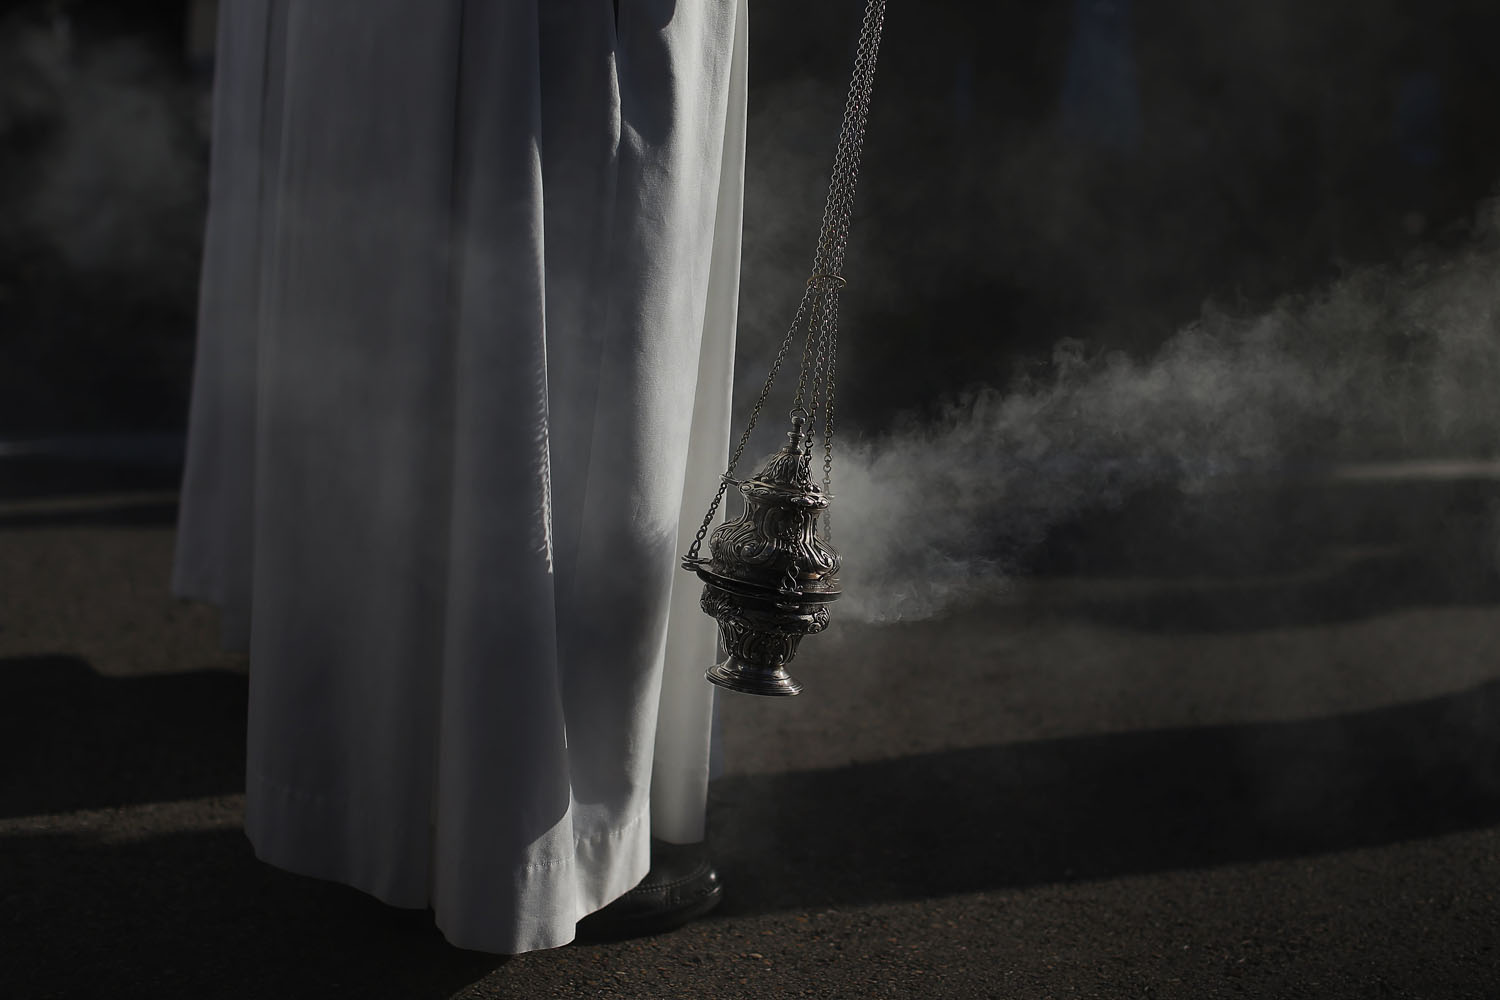 Dec. 29, 2013. A member of the church shakes a censer during a mass honoring the family in Madrid, Spain.